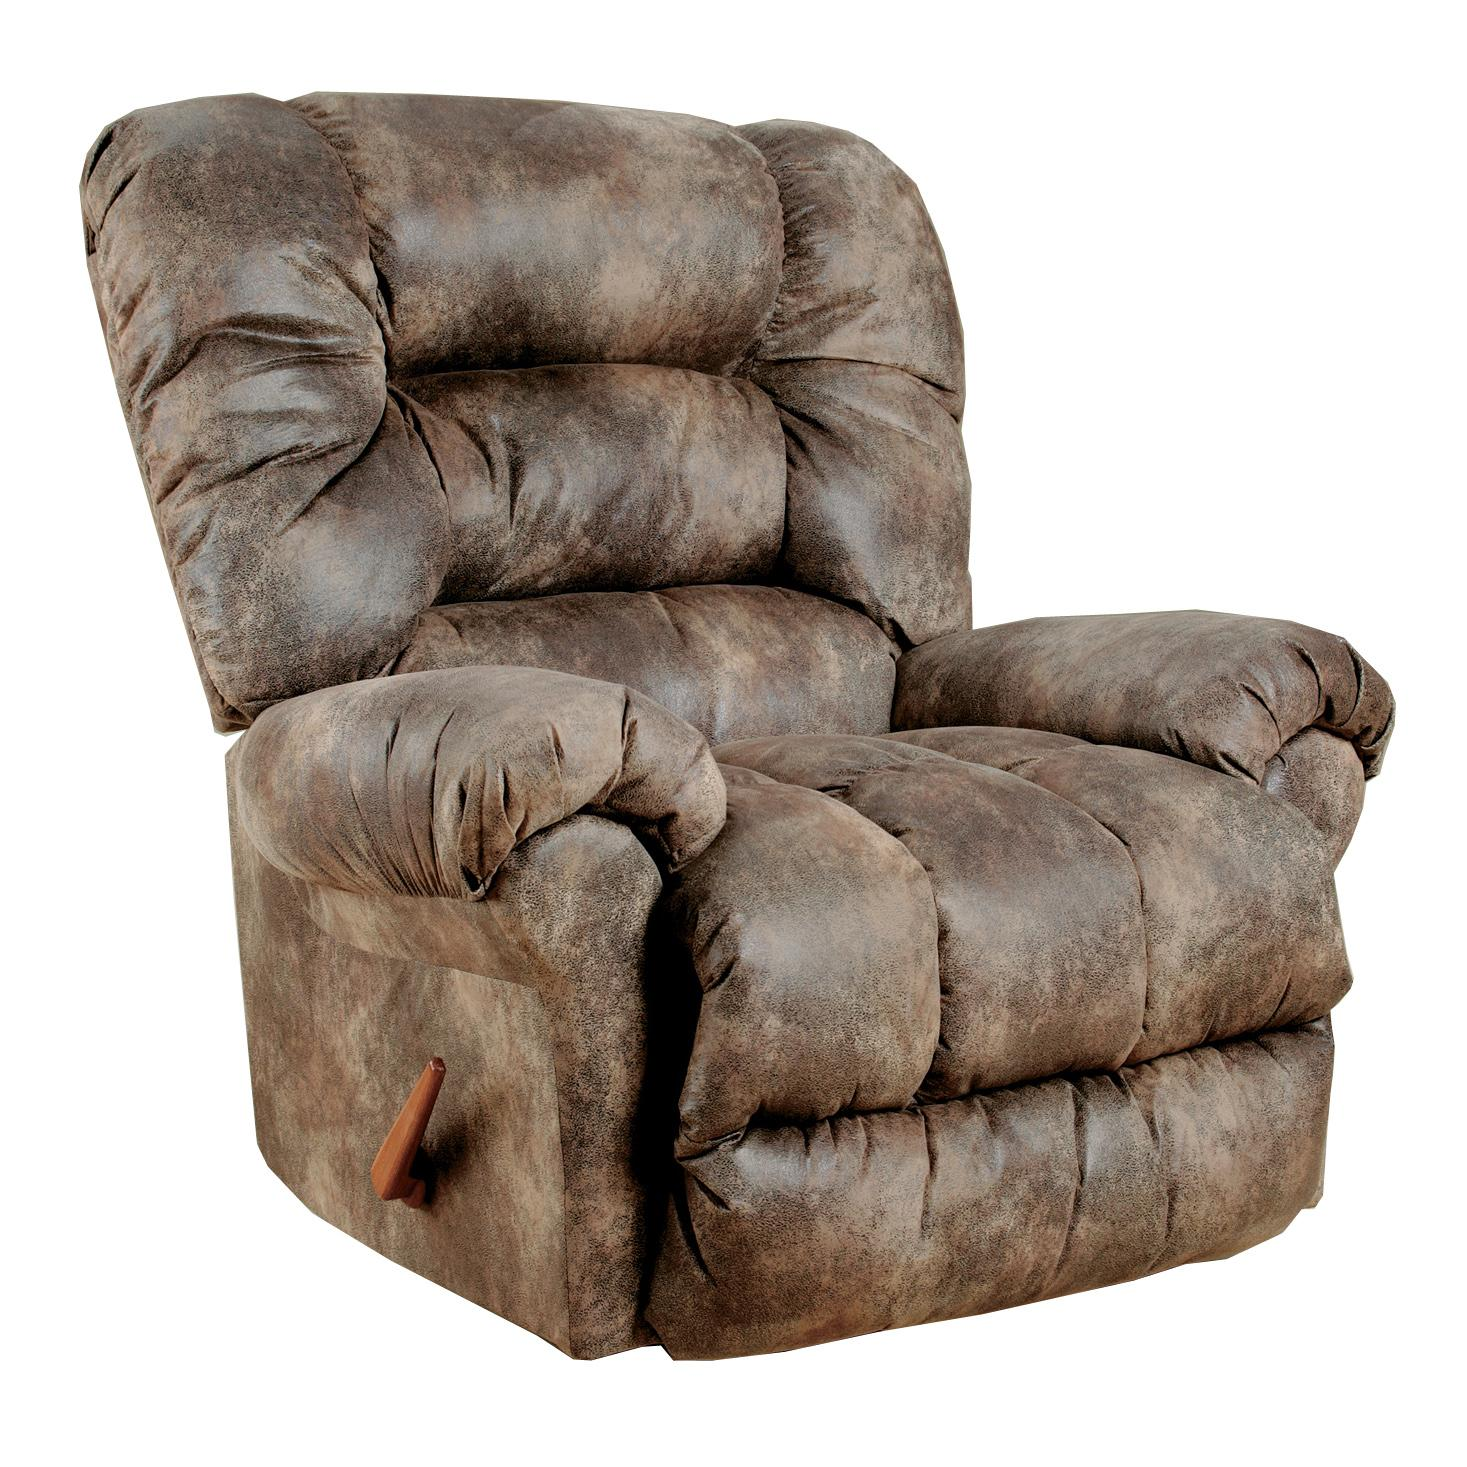 Best Home Furnishings Recliners - Medium Seger Power Space Saver Recliner - Item Number: 7MP24